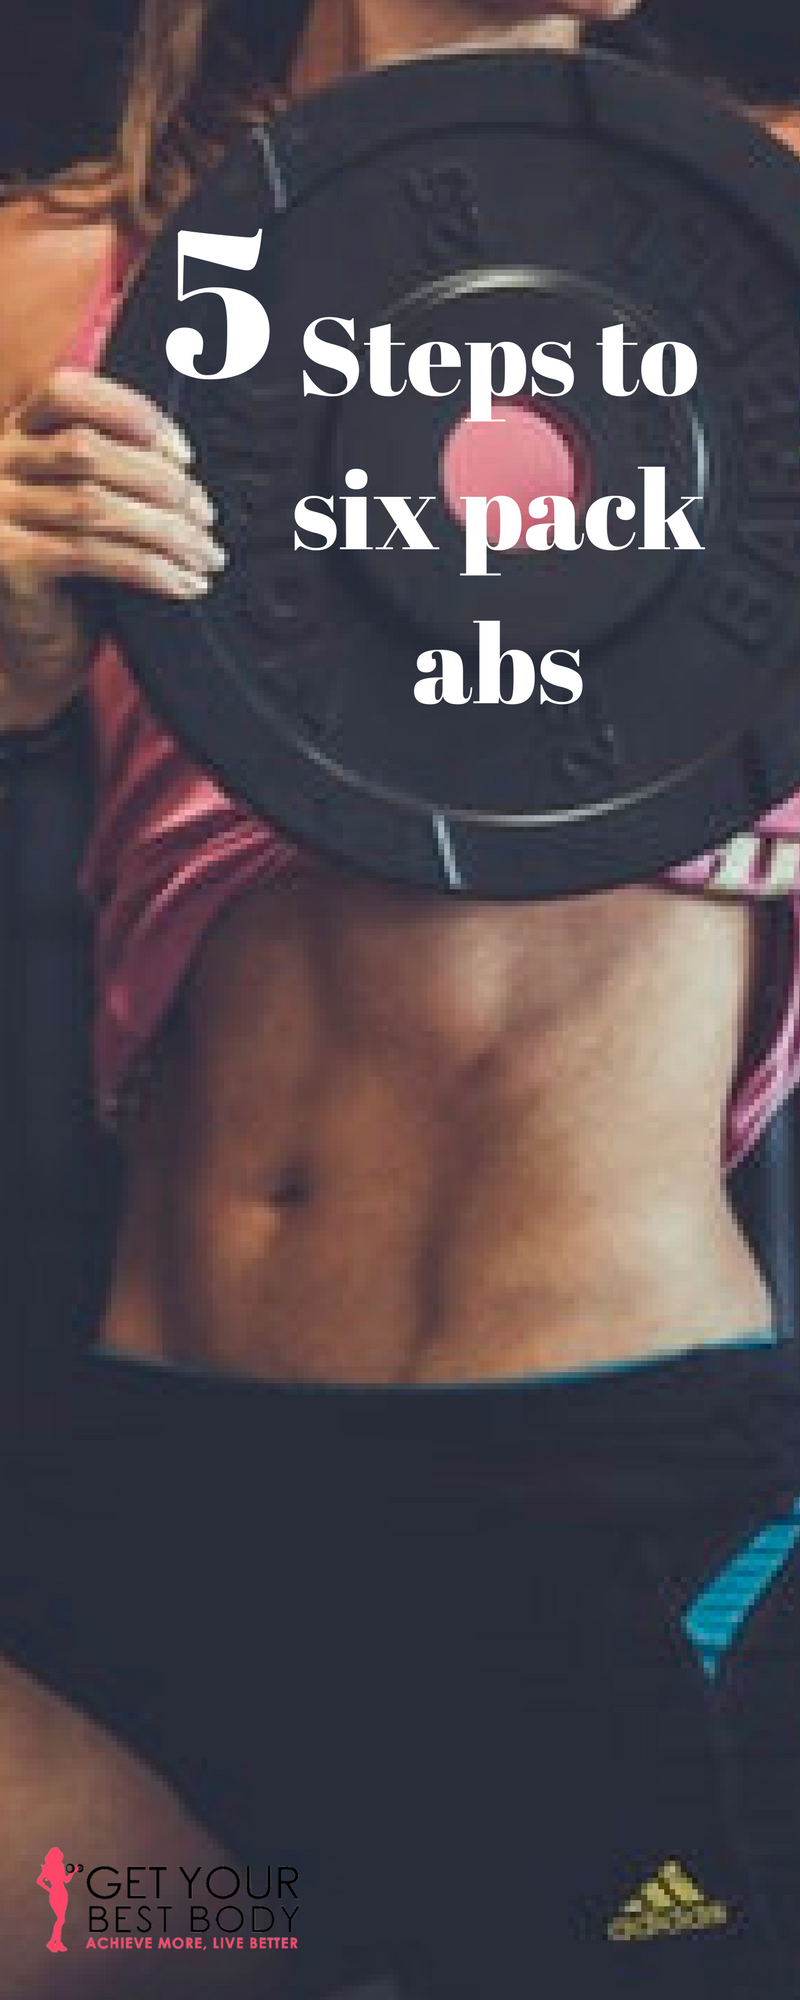 how to get a six pack fast female